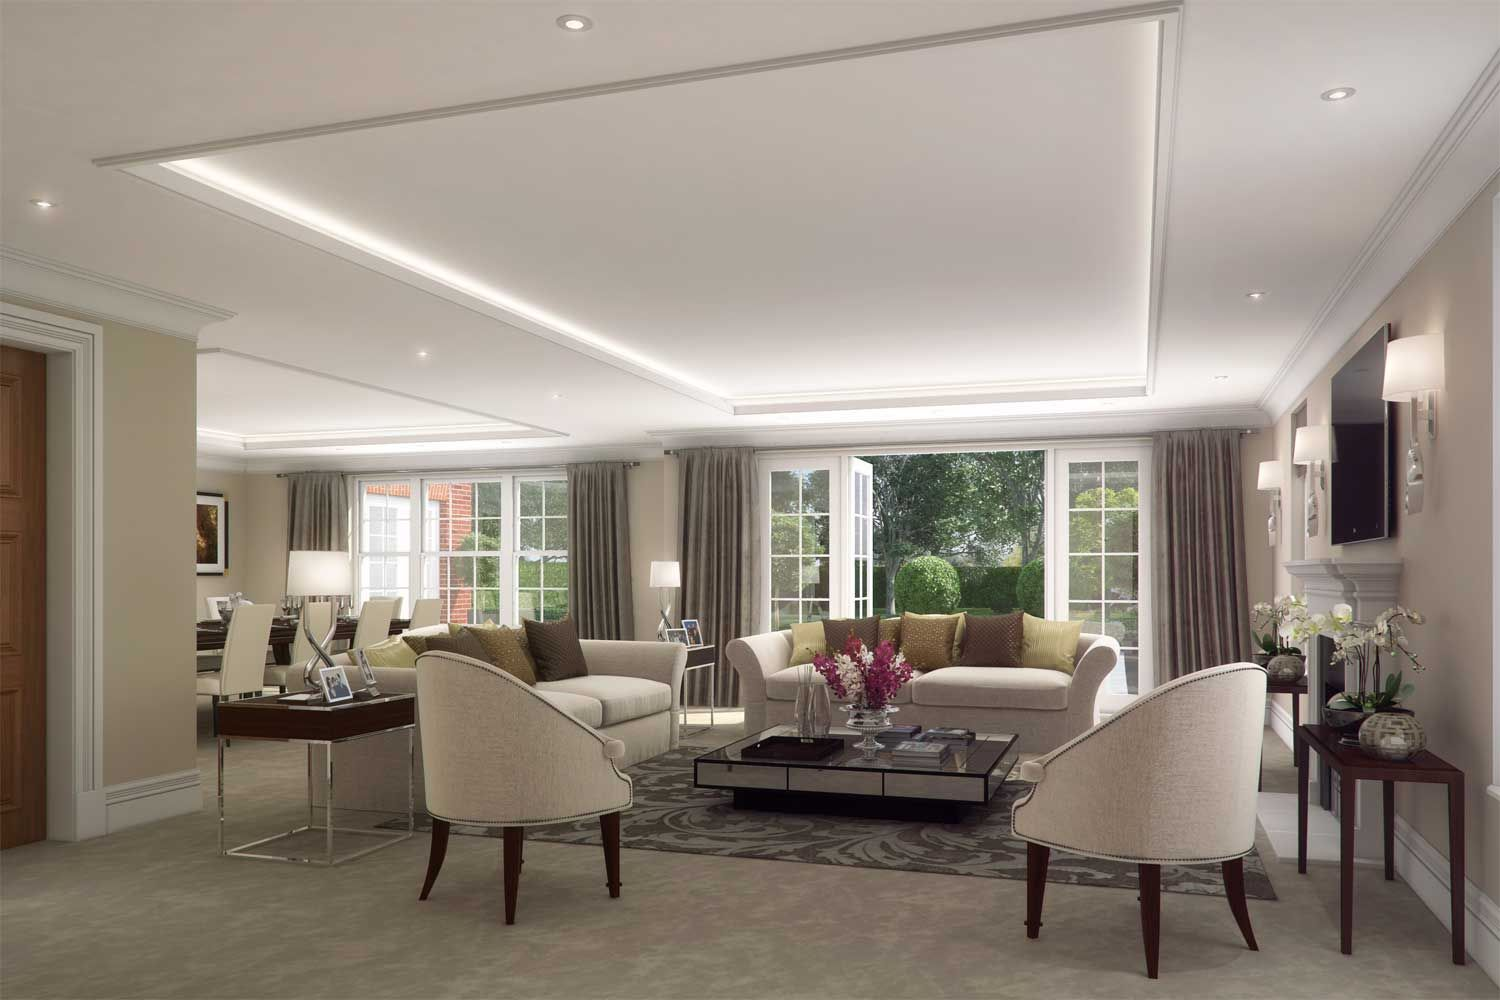 Architectural visualisation of a reception room ...